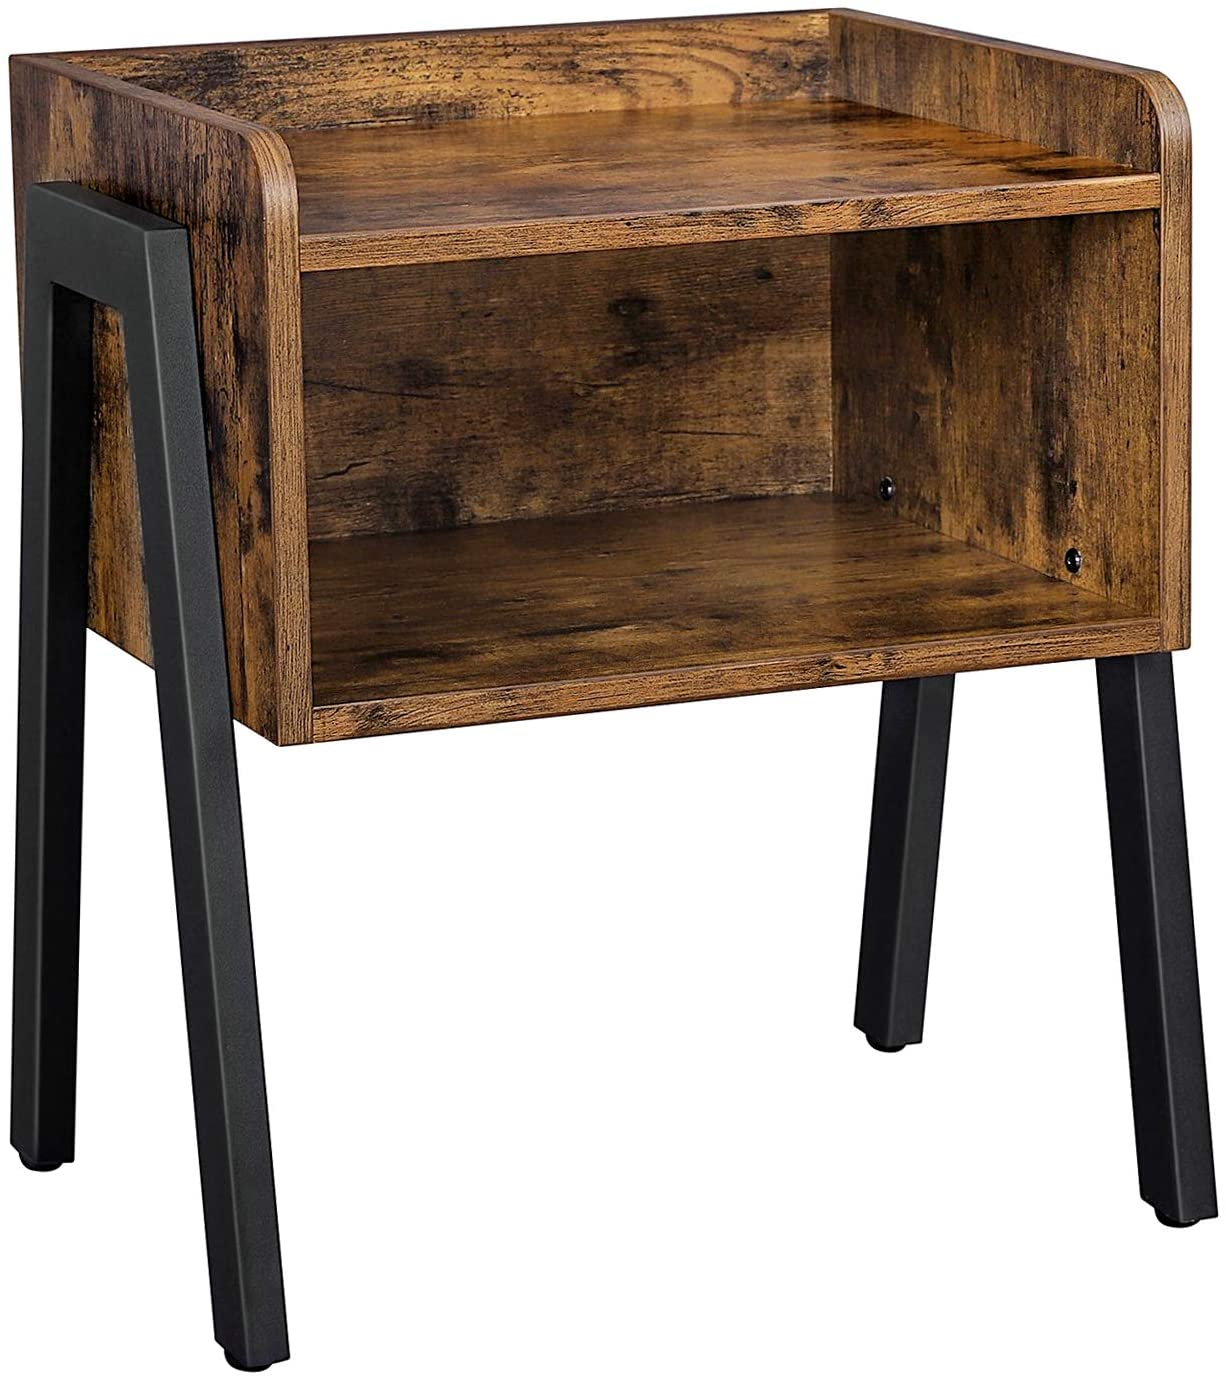 Vasagle Side Table Nightstand Stackable End Table With Open Storage Compartment Retro Rustic Chic Industrial Accent Furniture With Steel Legs Rustic Brown And Black Let54x Amazon Co Uk Home Kitchen